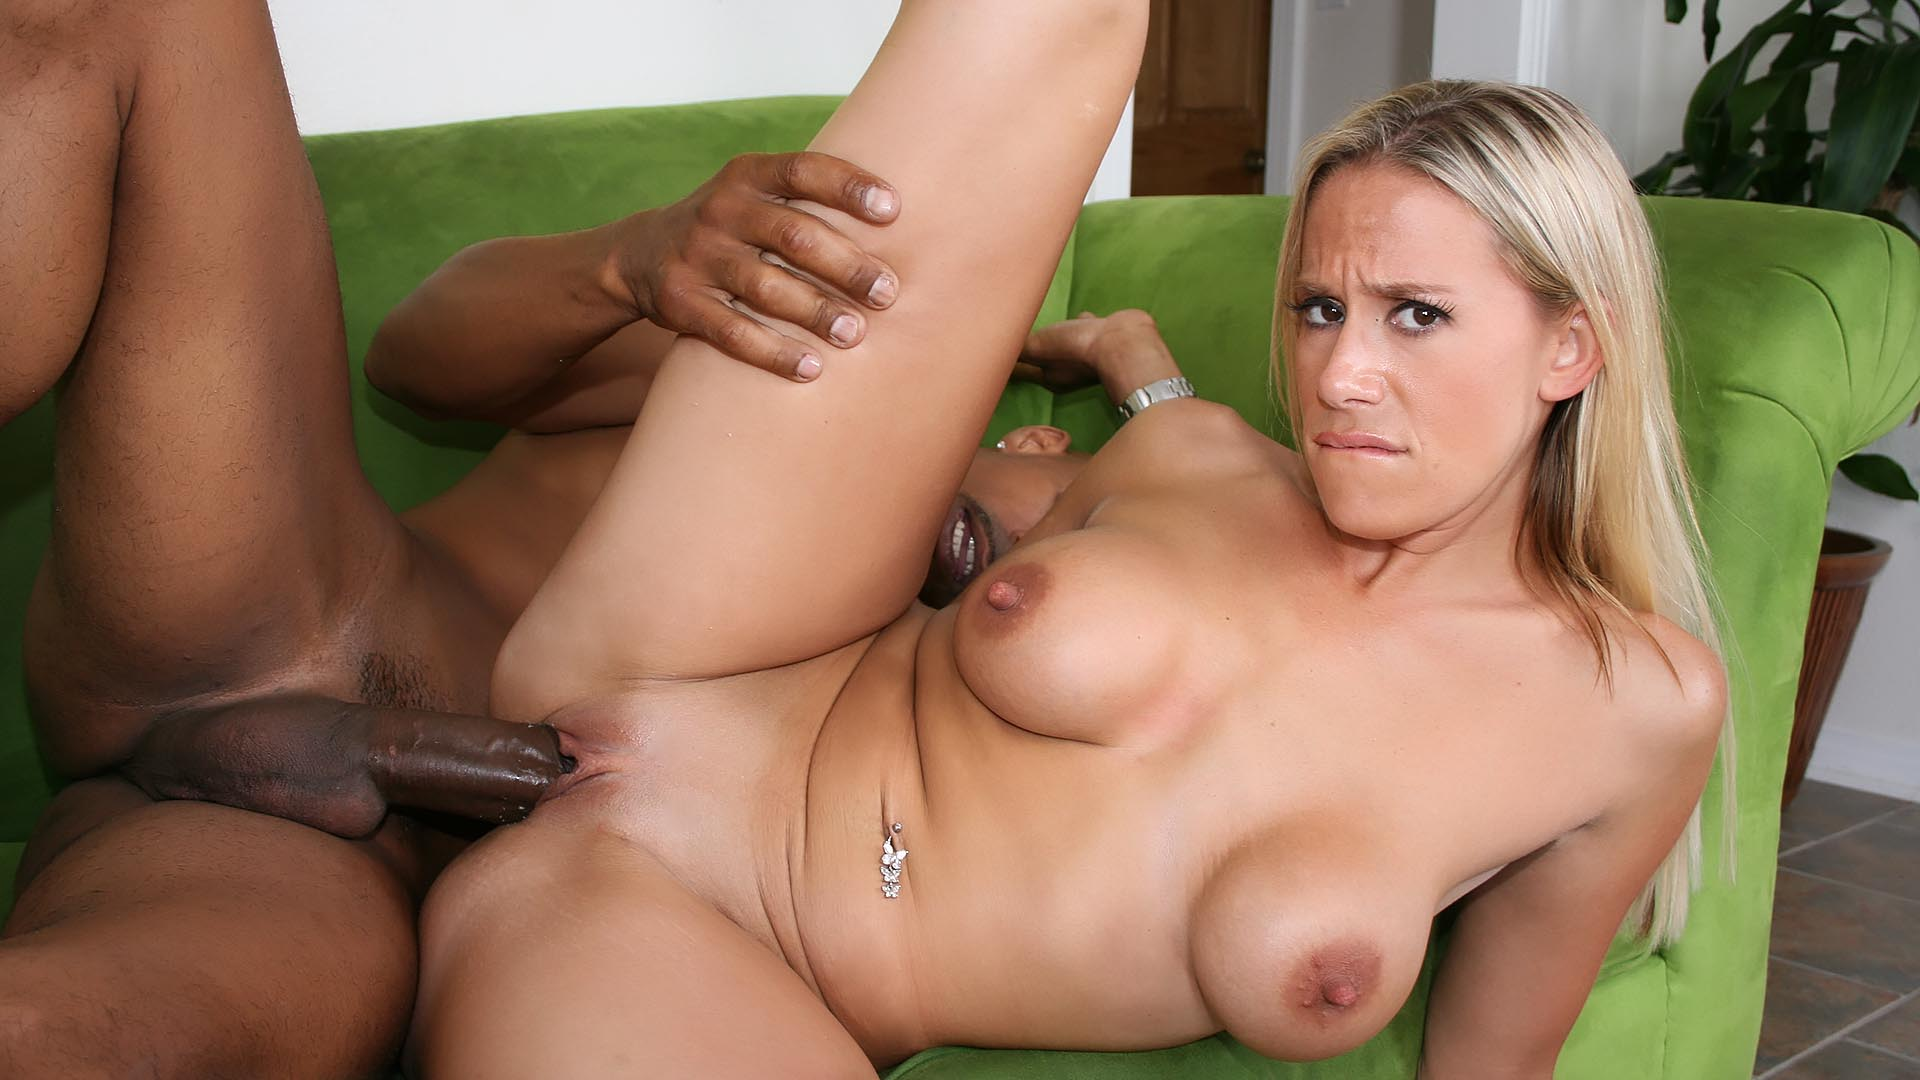 Milf Really Likes His House And She Started Liking His Big Cock